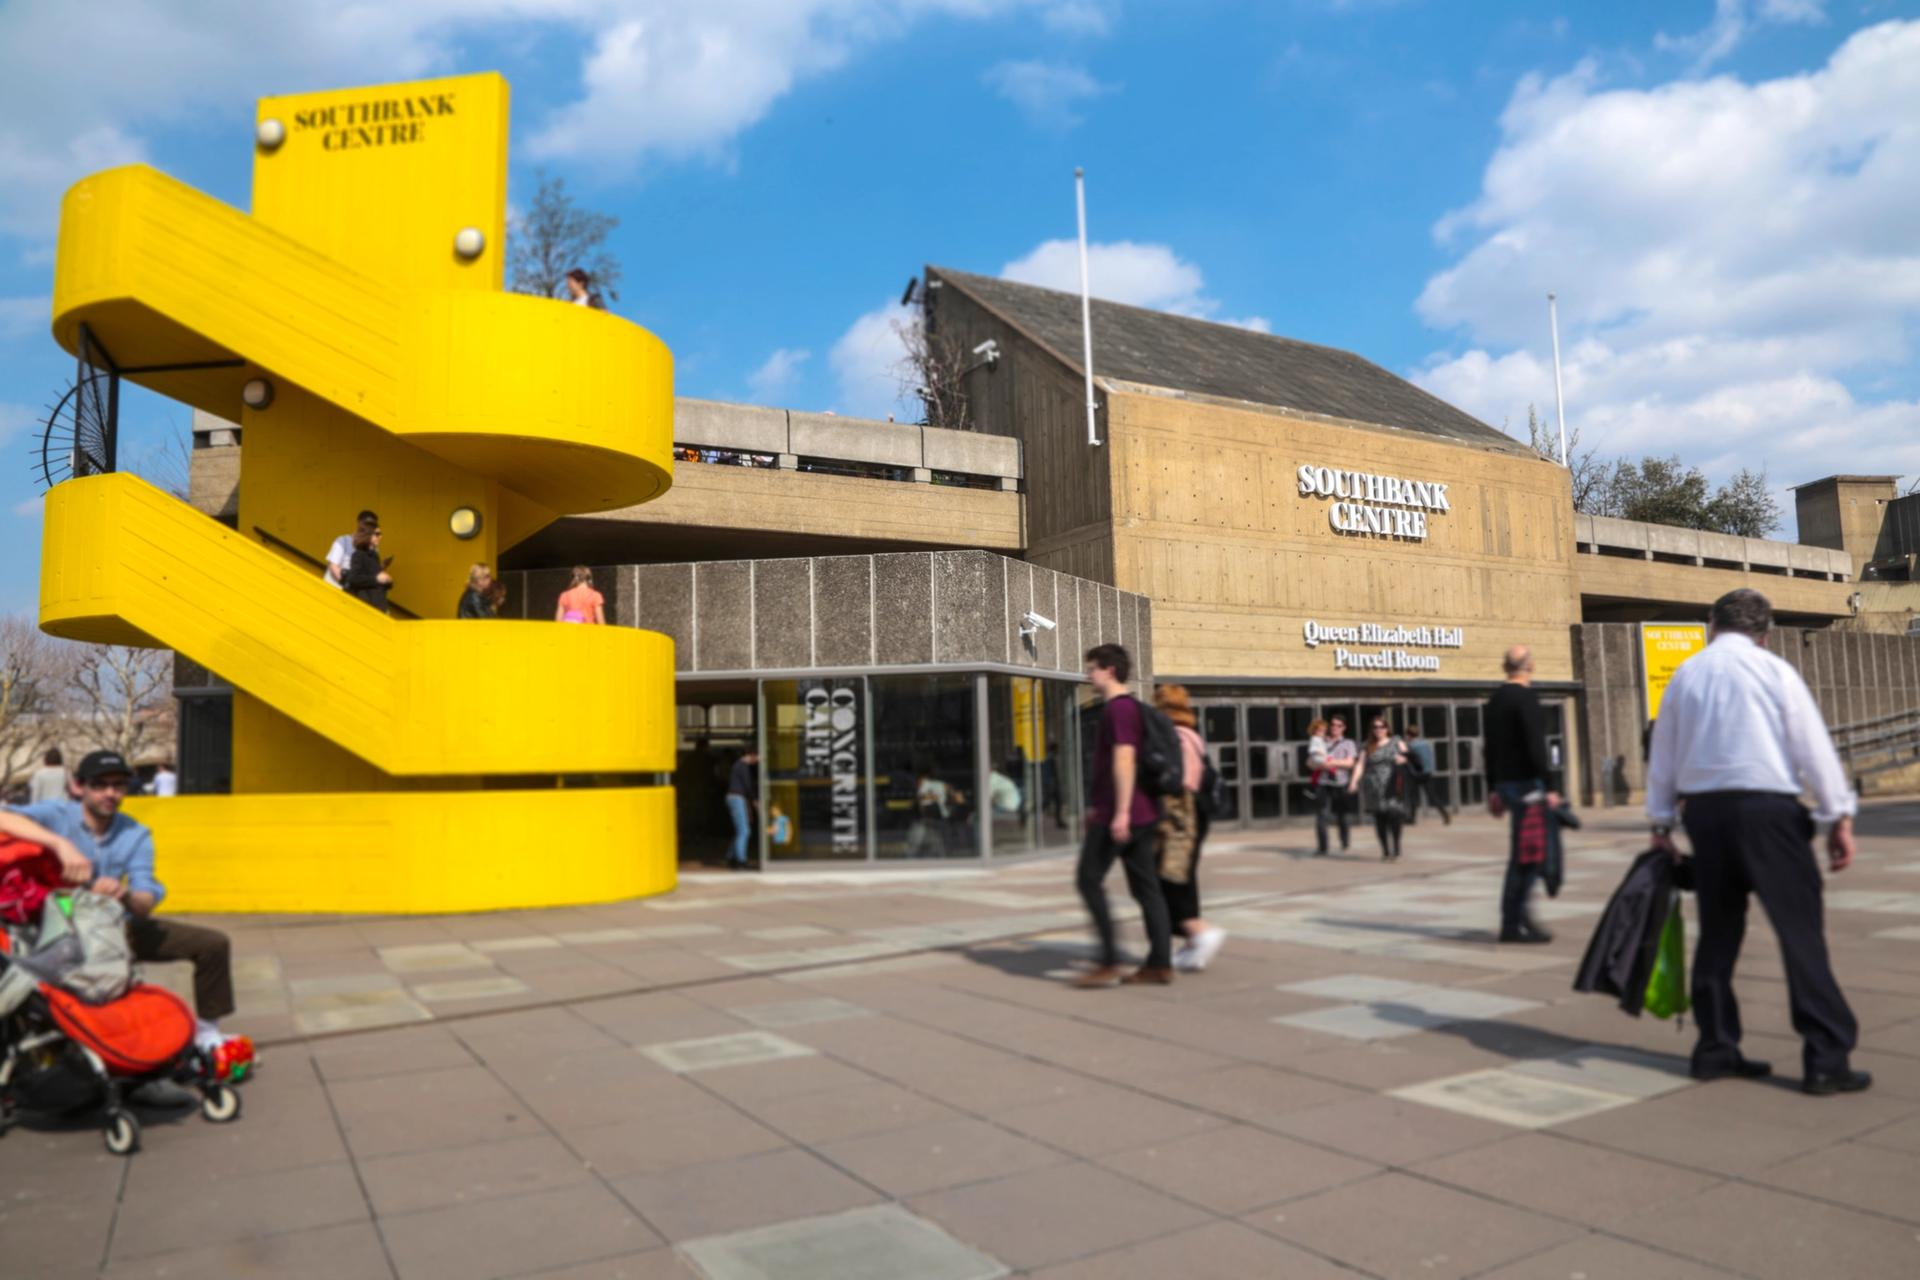 The Queen Elizabeth Hall at the Southbank Centre, London Photo: Southbank Centre/India Roper-Evans